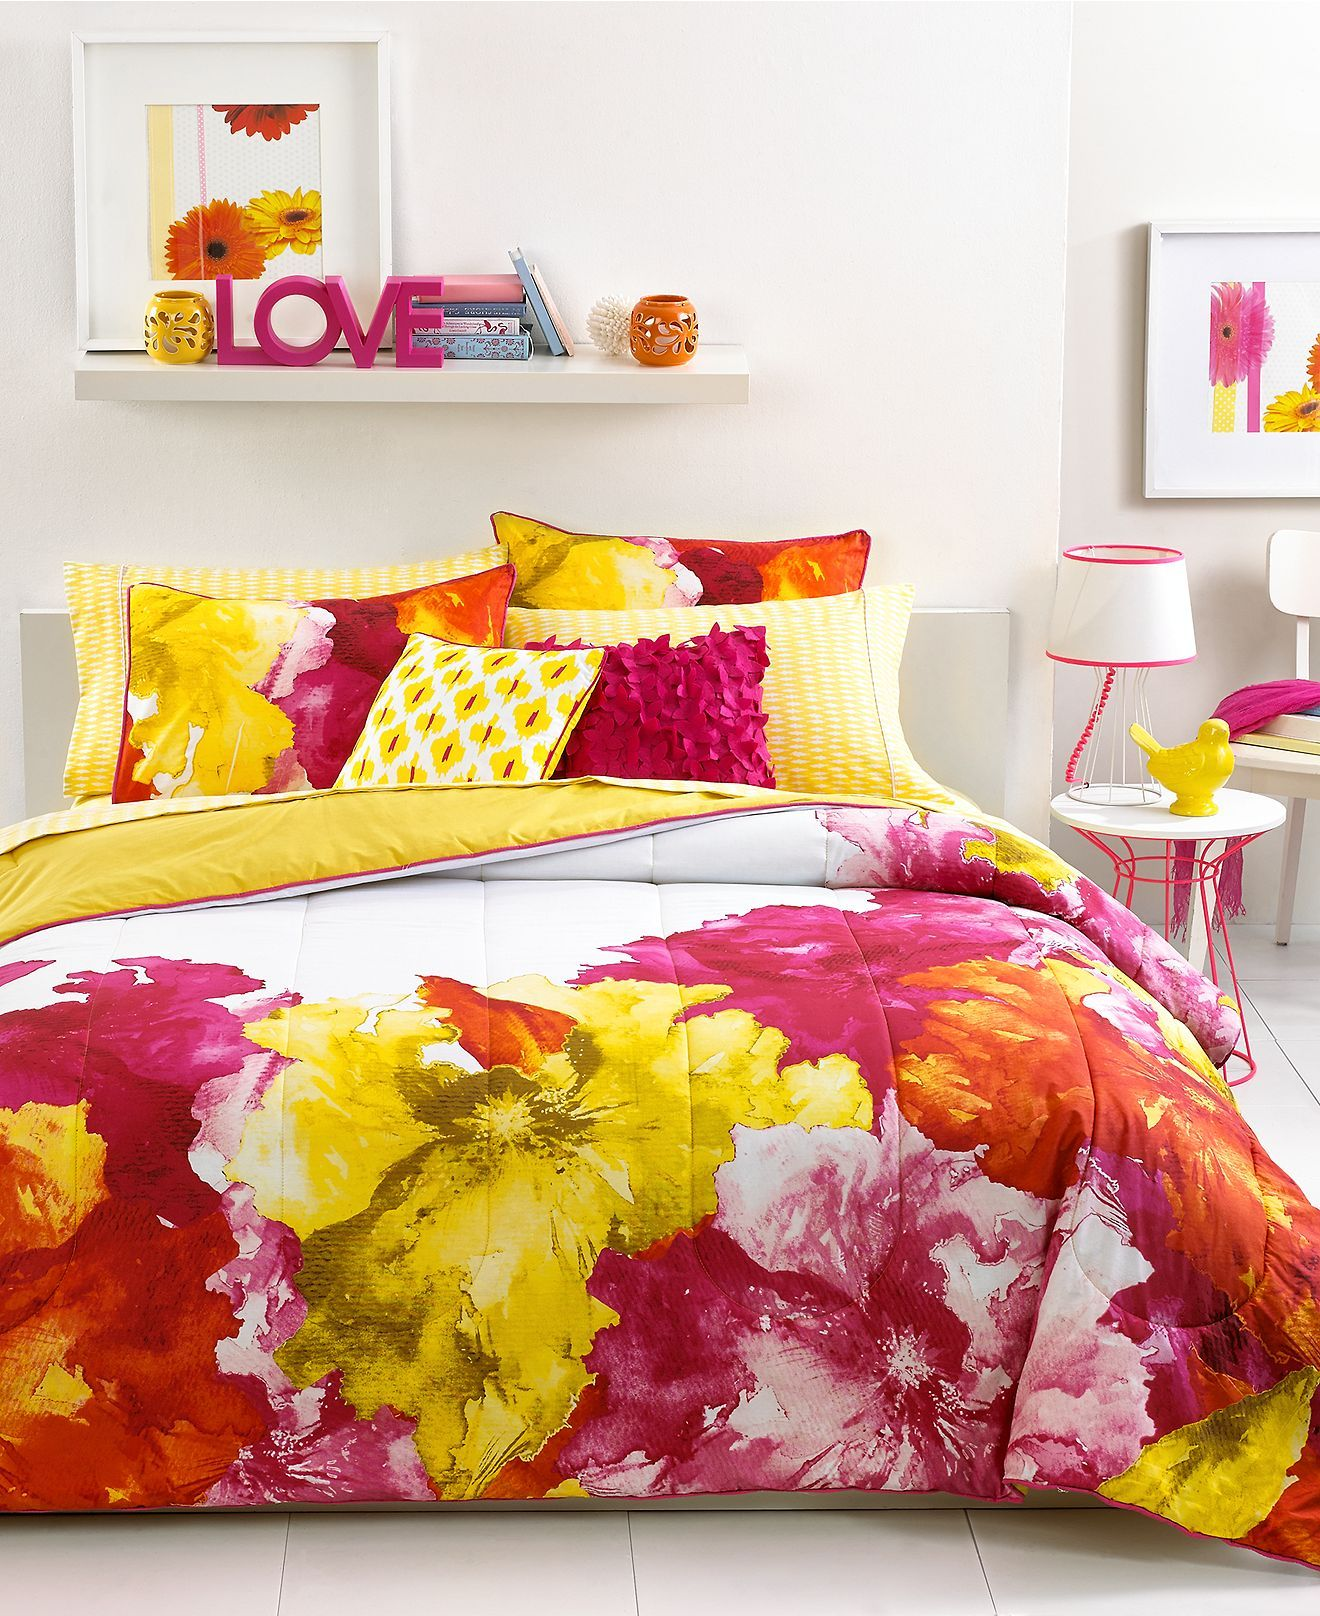 inspiration home to yellow plus sweetgalas as improvement blue covers cover grey white queen pleasing full duvet your cottonappealing and decor appealing apply fullqueen set